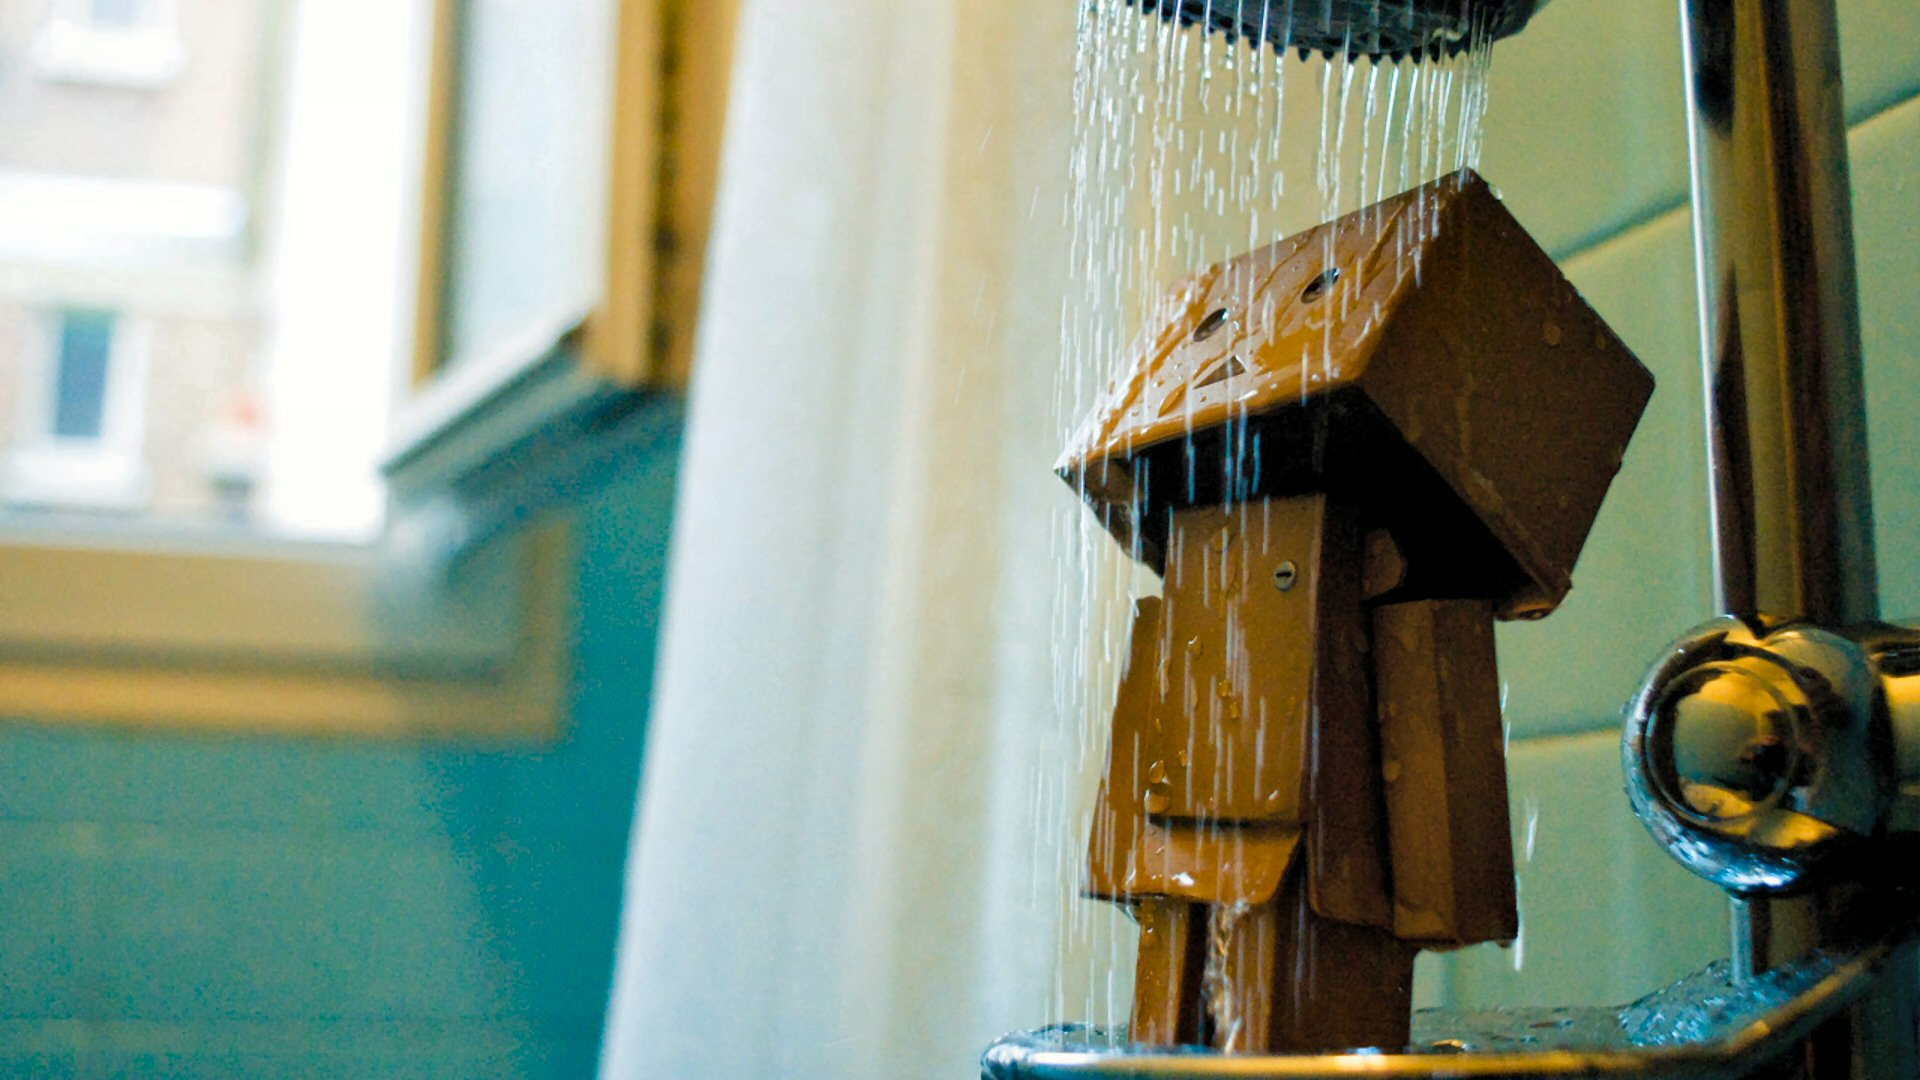 Danbo Bath Wallpaper Image